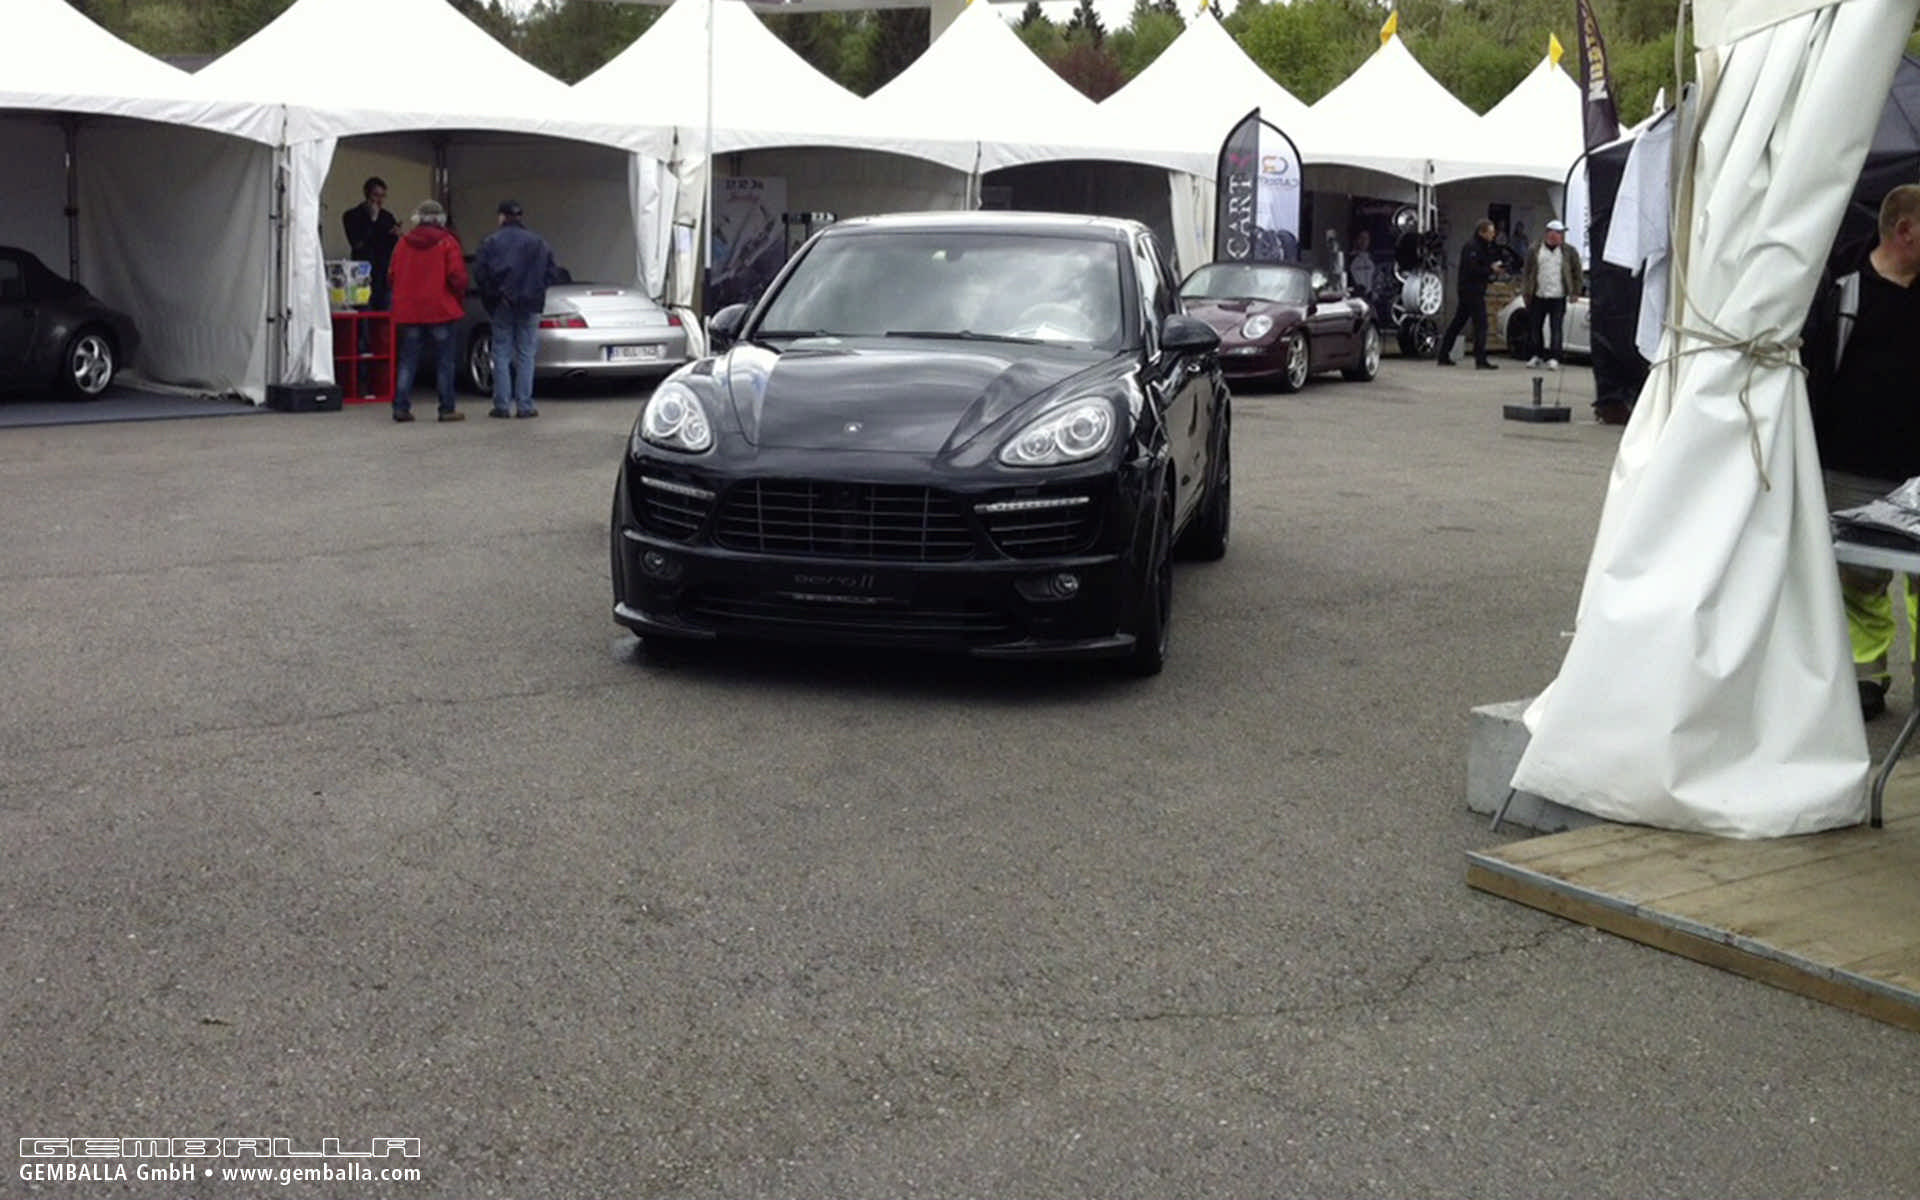 gemballa_gmbh_events_spa_francorchamps_2014_4